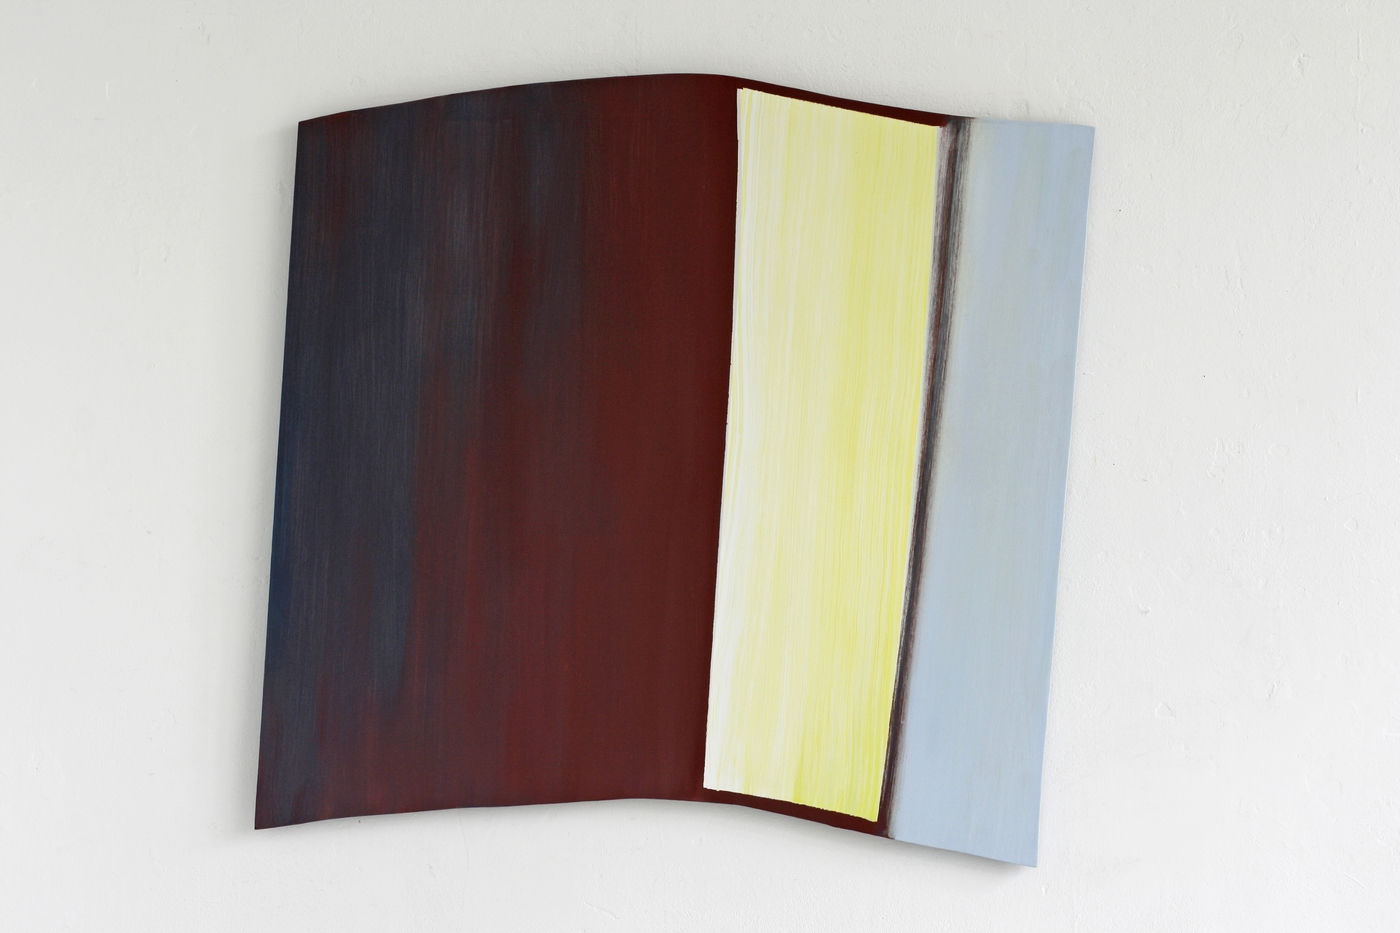 2020 oilpaint on panel 75 x 78 x 2 cm